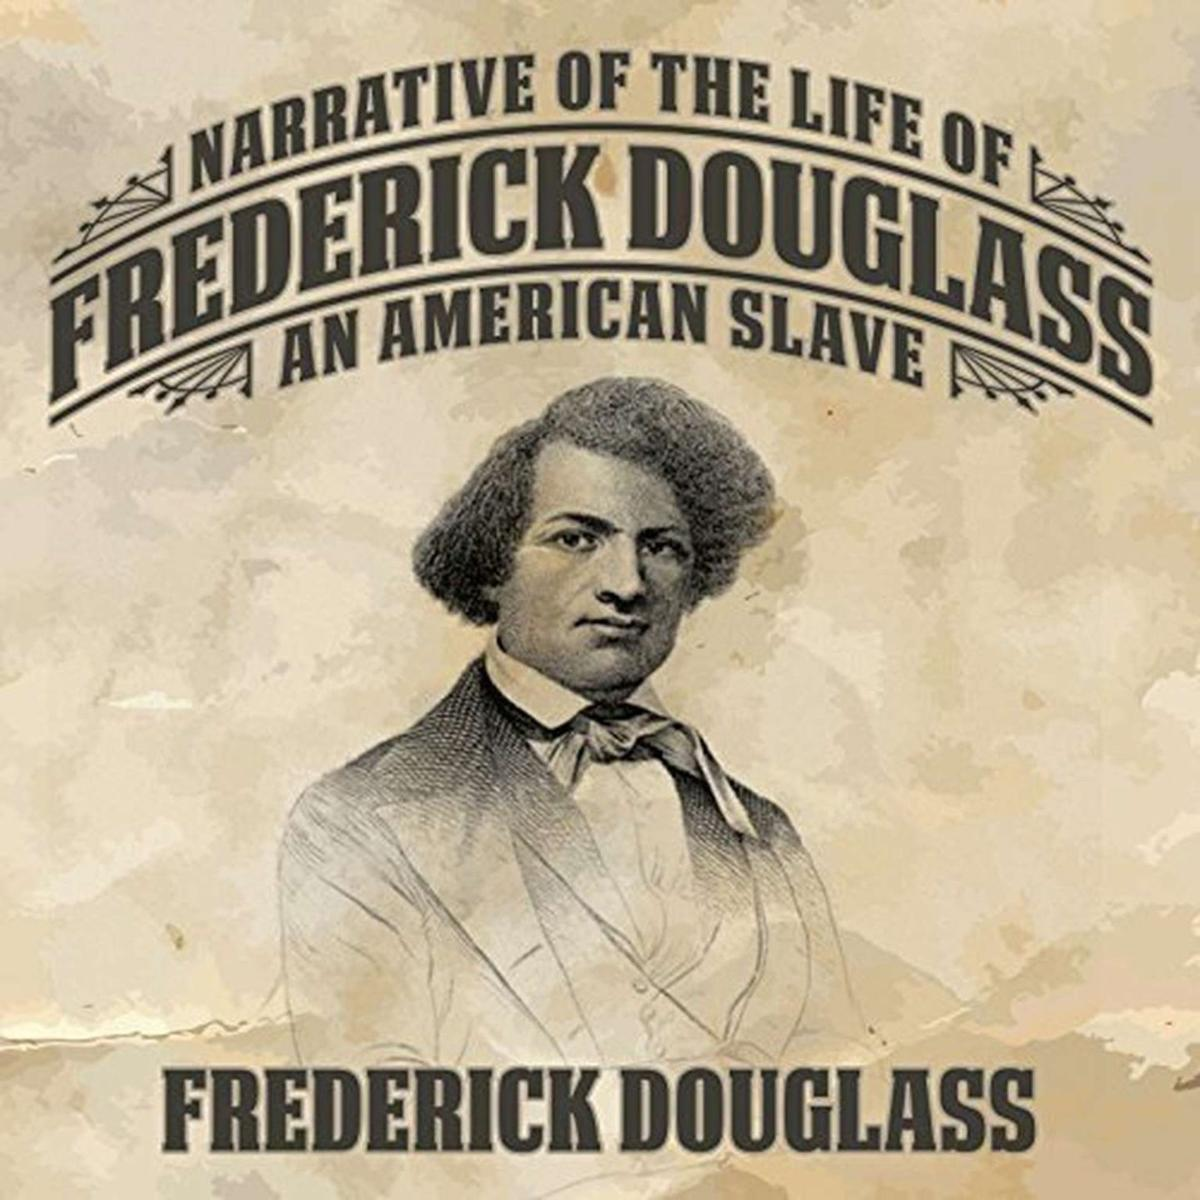 1841-1860: Timeline of the Life of Frederick Douglass